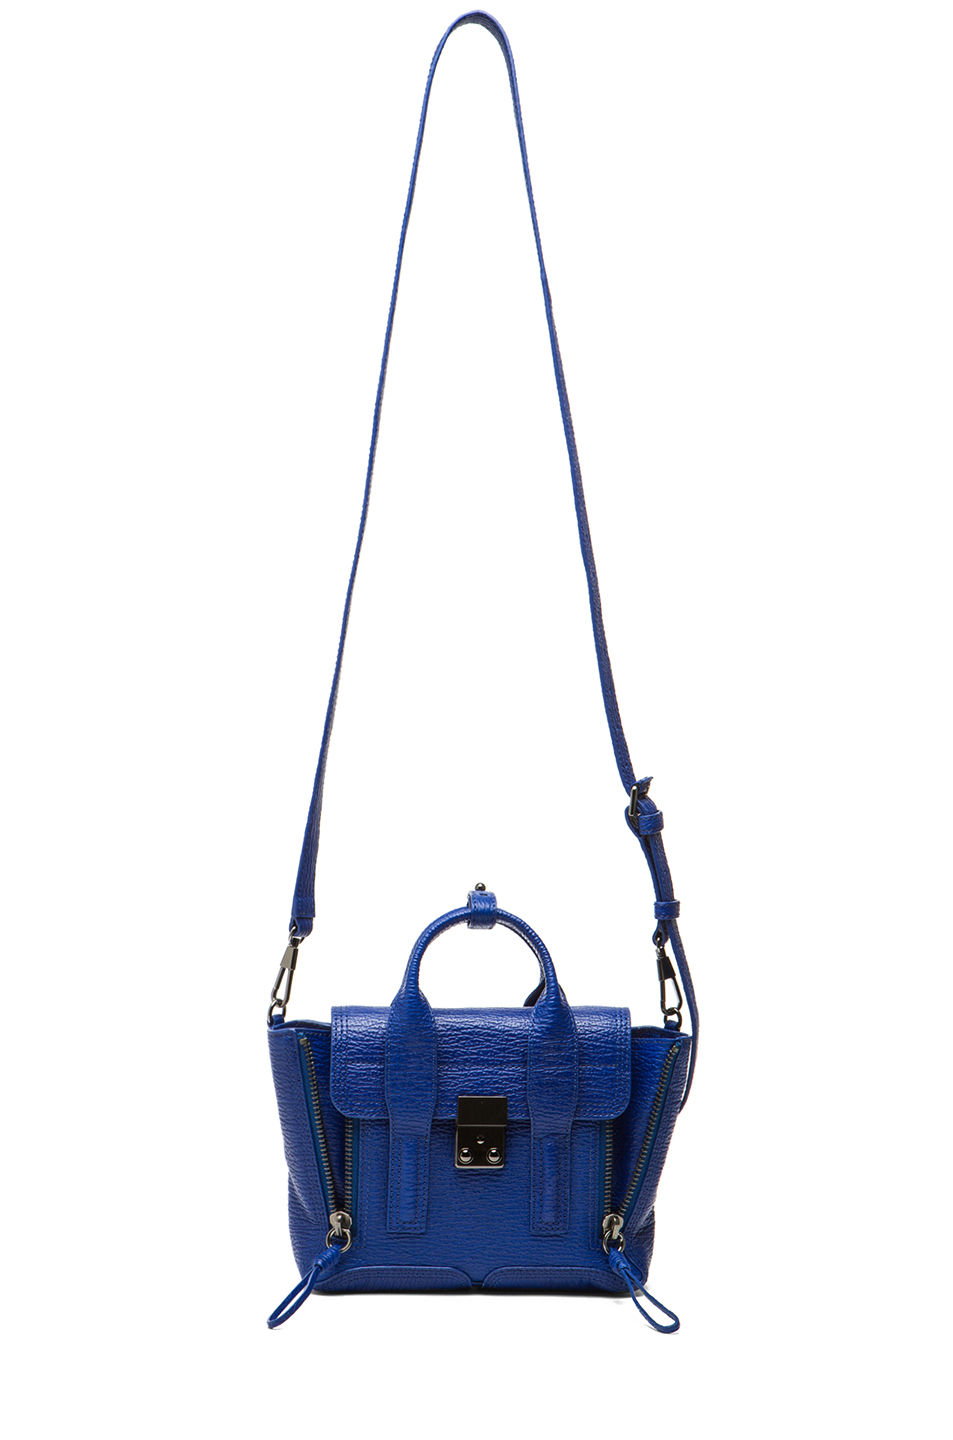 3.1 phillip lim|Mini Pashli Satchel in Cobalt